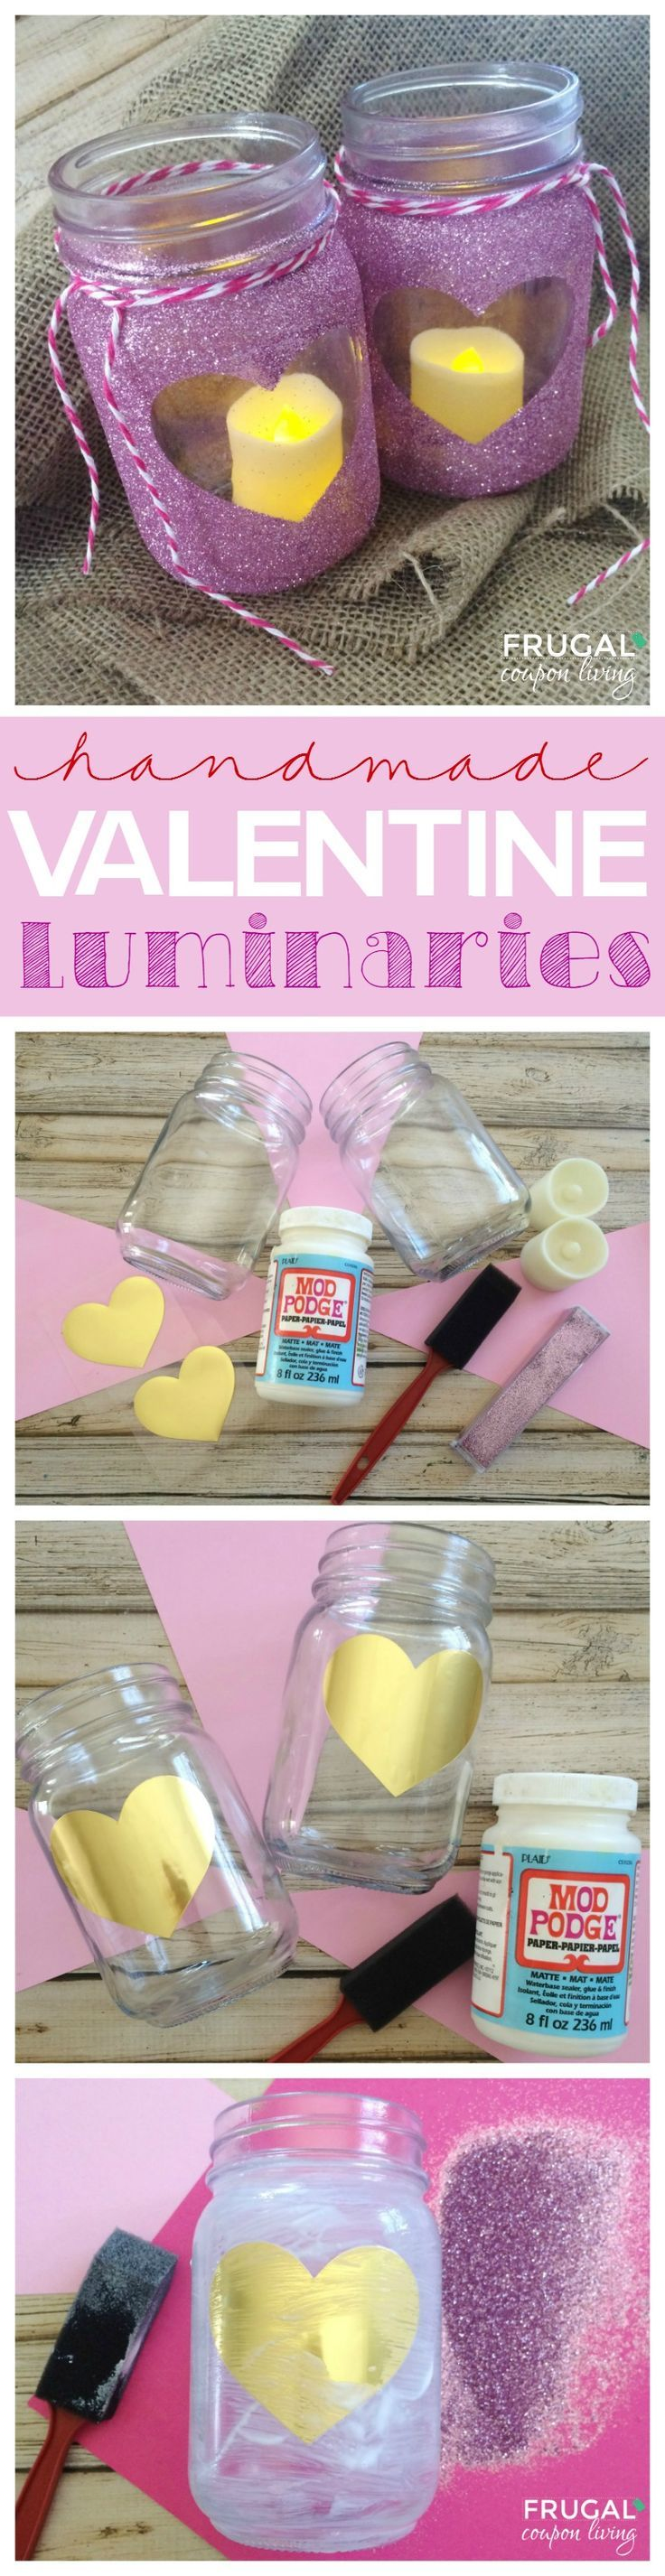 Homemade Valentine Luminaries Mason Jar Craft - Easy and fun mason jar craft for those of all ages. Valentine Craft on Frugal Coupon Living.